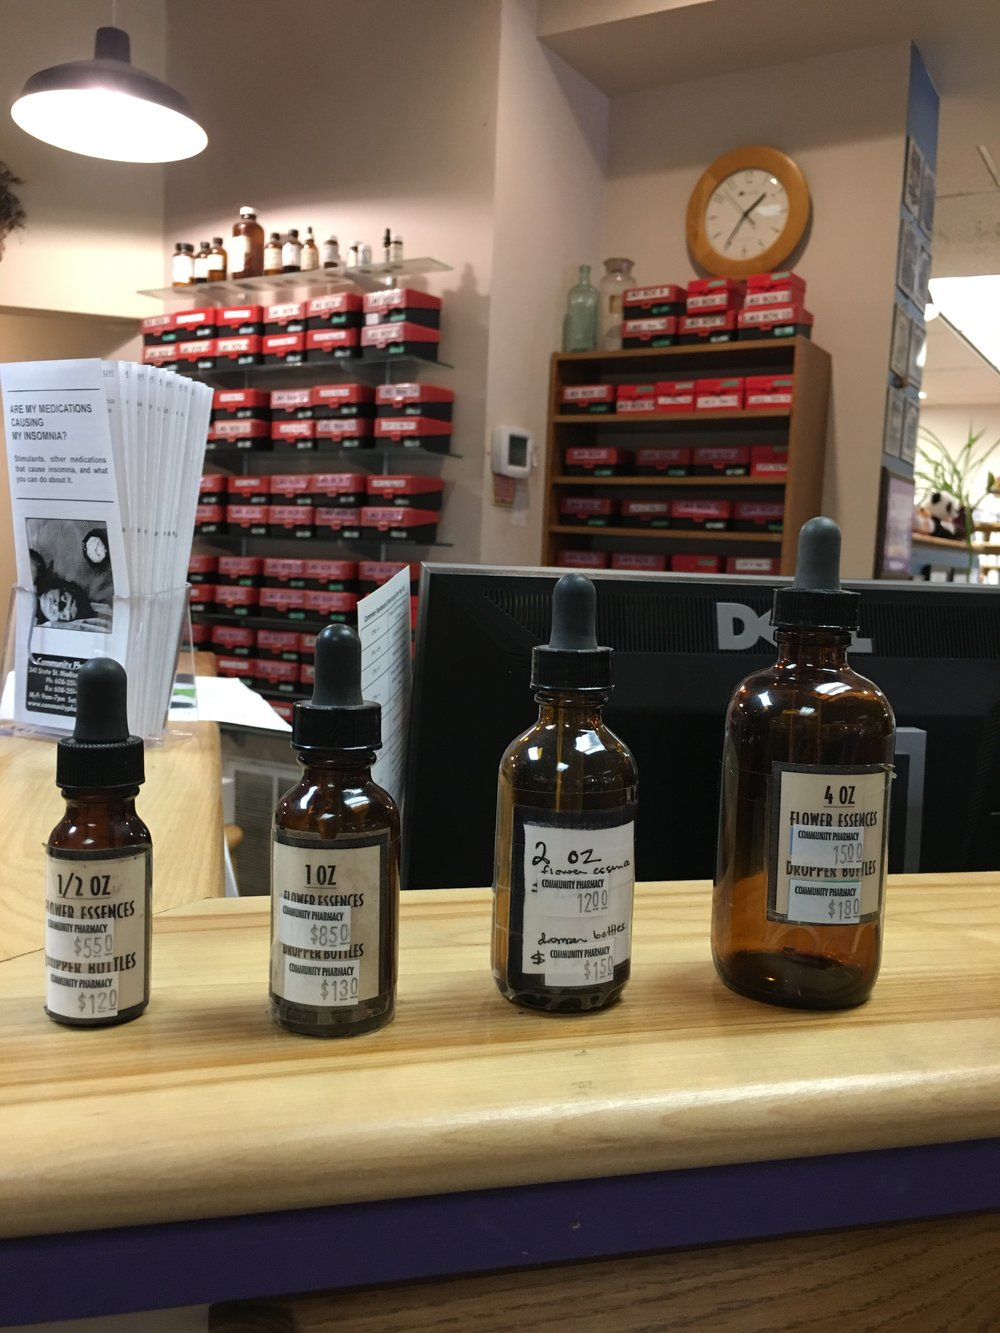 Made a pit stop at the Community Pharmacy to see if it was true that they will custom make Flower Essence blends for folks. Stay tuned for this offering coming soon to Moon River's Healing Room!